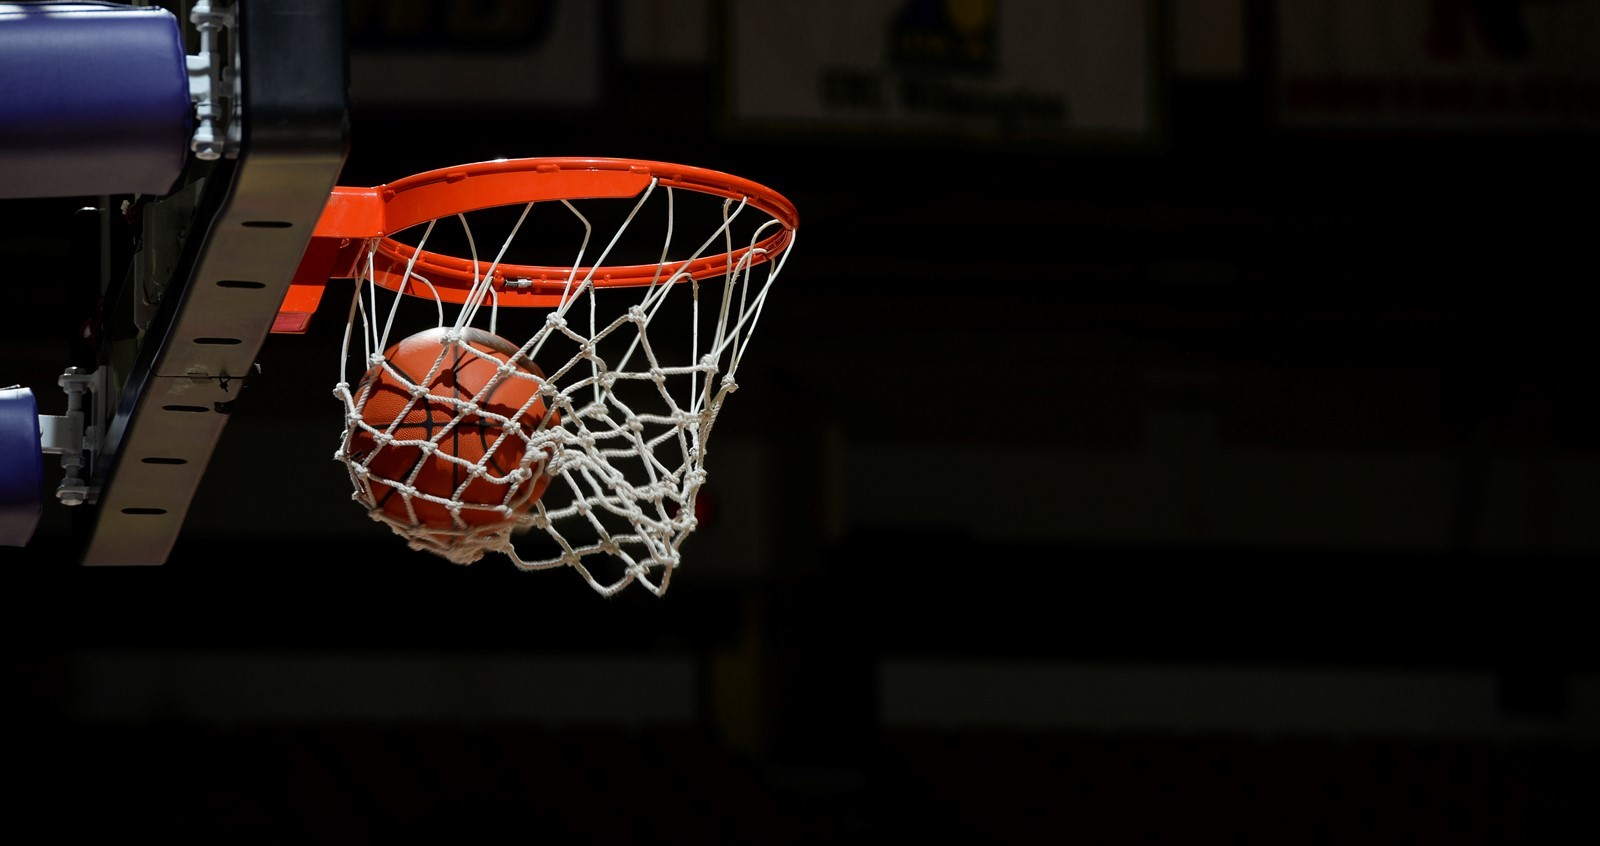 Men's Basketball: JMU Suspends Two Men's Basketball Student-Athletes